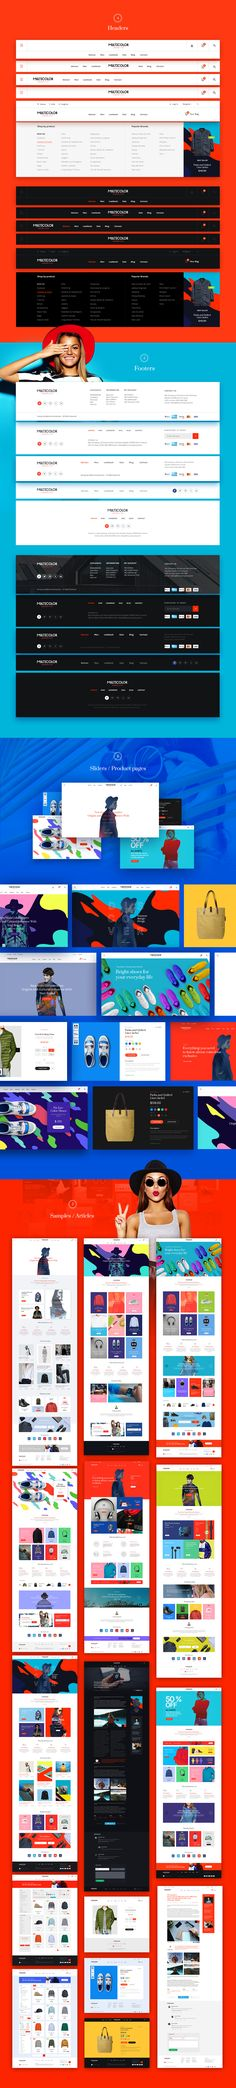 i'm proud to present you stylish and bright UI kit, which consists of more than hundred ready-to-use elements. We tried to make it as useful and diverse as possible to help you save time by facilitating designing or prototyping processes.